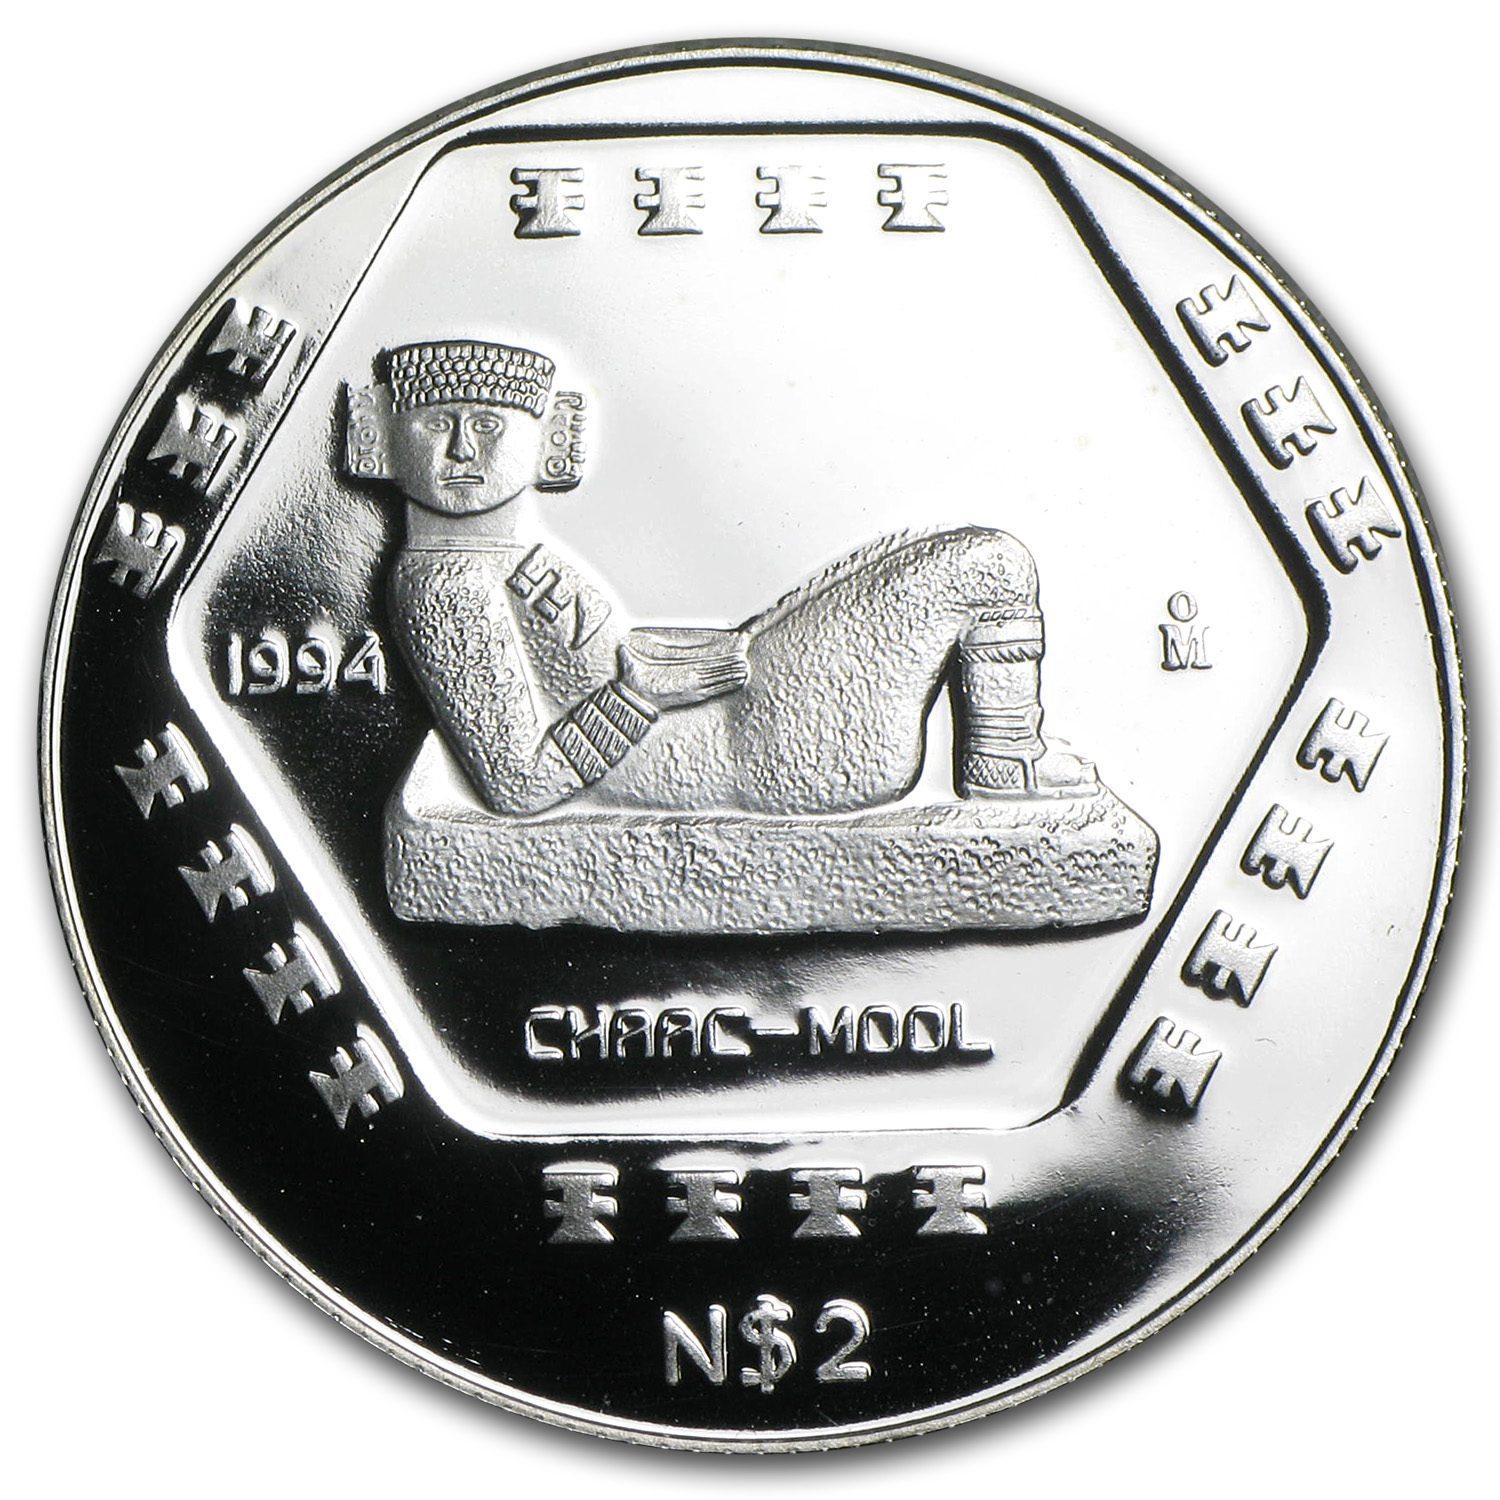 1994 Mexico 1/2 oz Silver 2 Pesos Chaac-Mool Proof